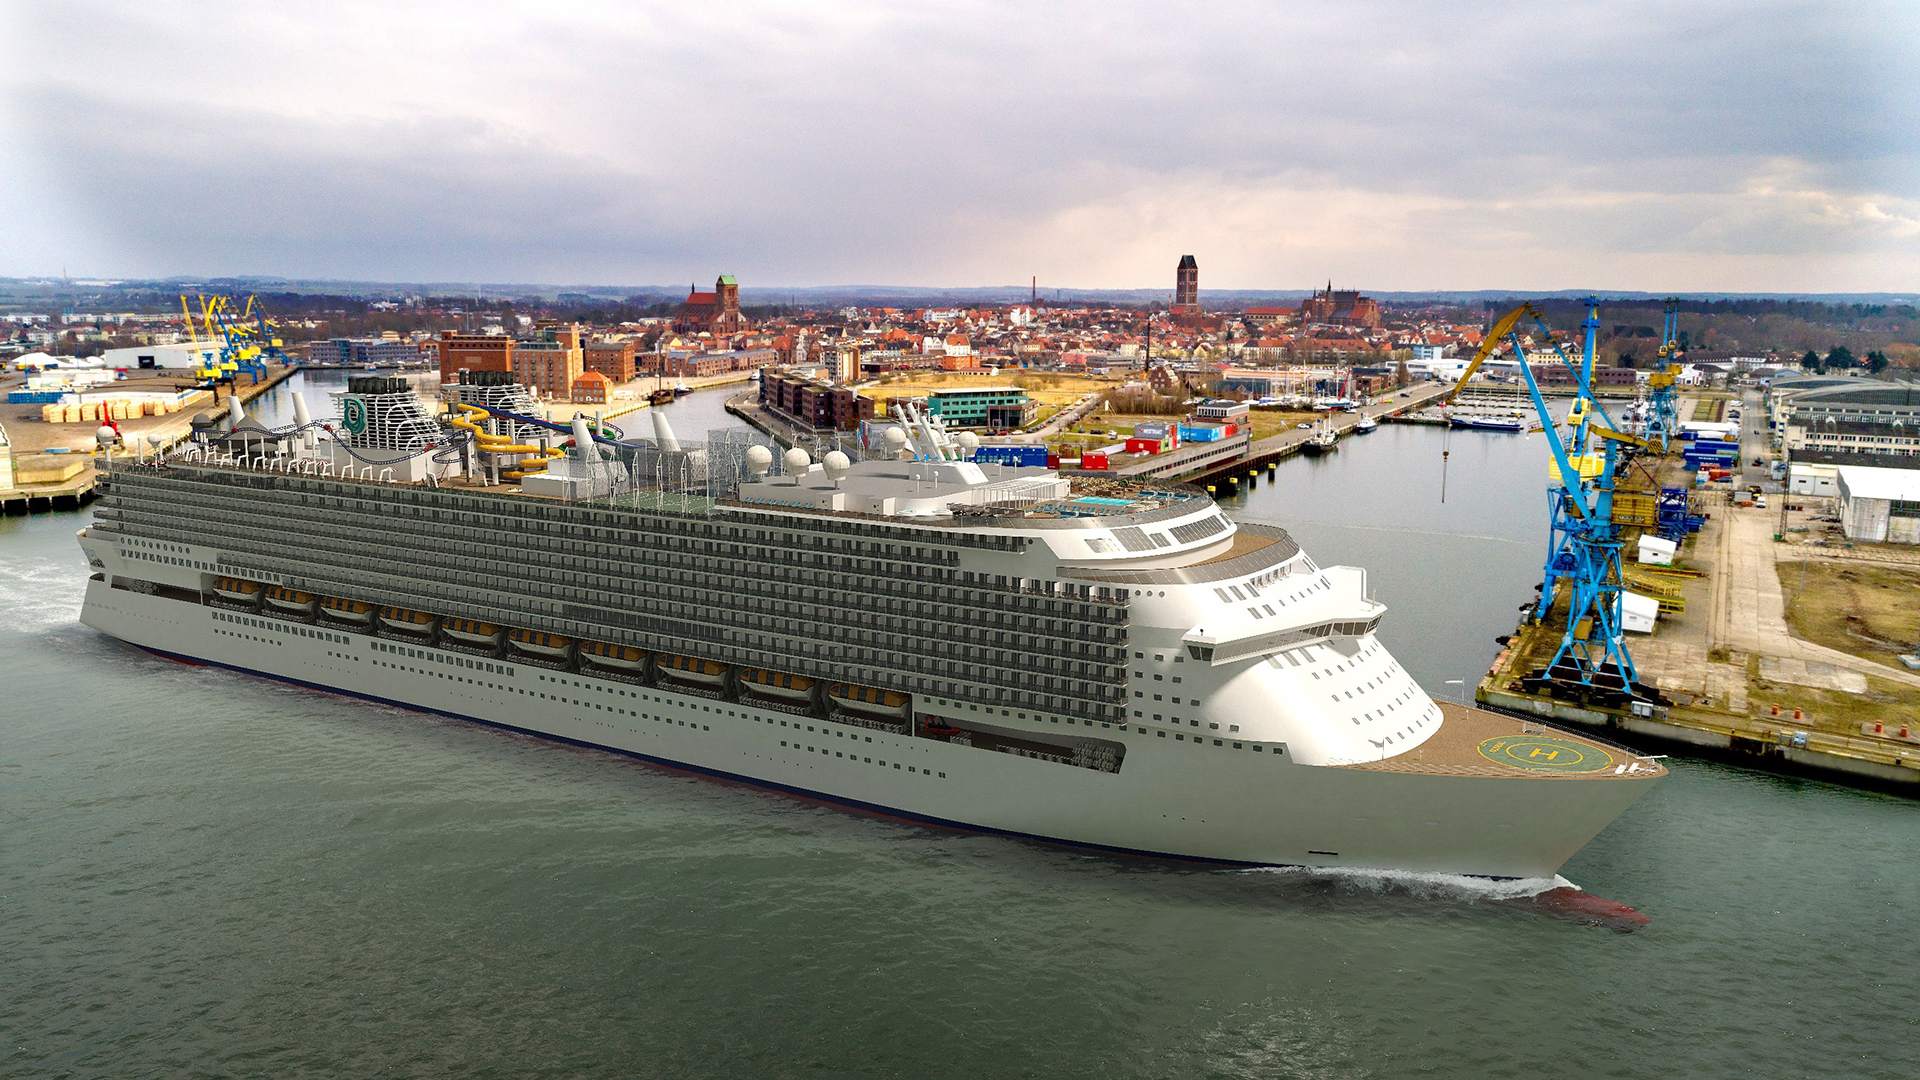 Deltamarin and Elomatic to design second Global class cruise ship